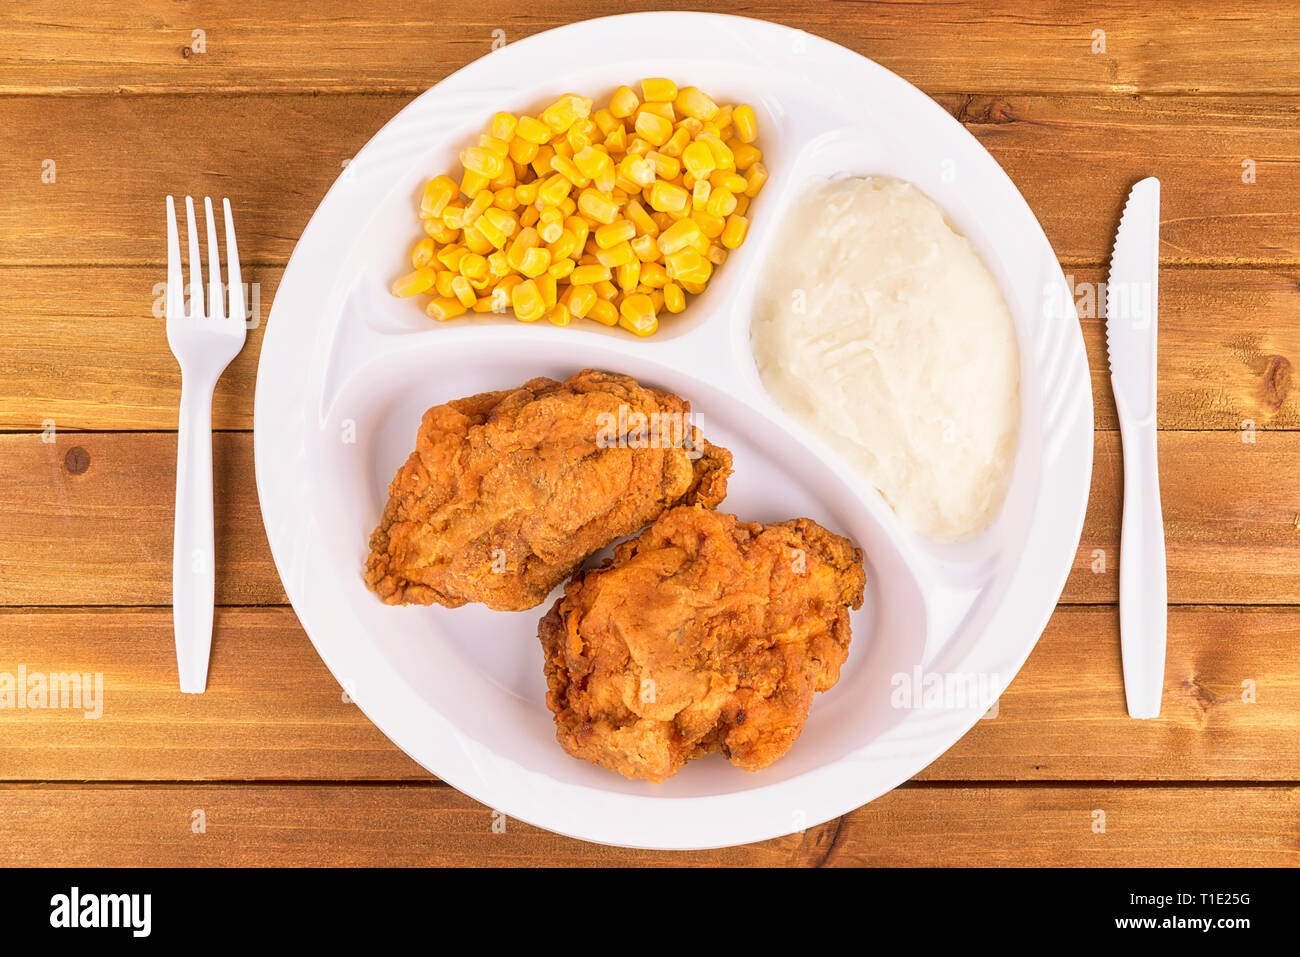 Fried chicken tv dinner on wooden background, top view. - Stock Image